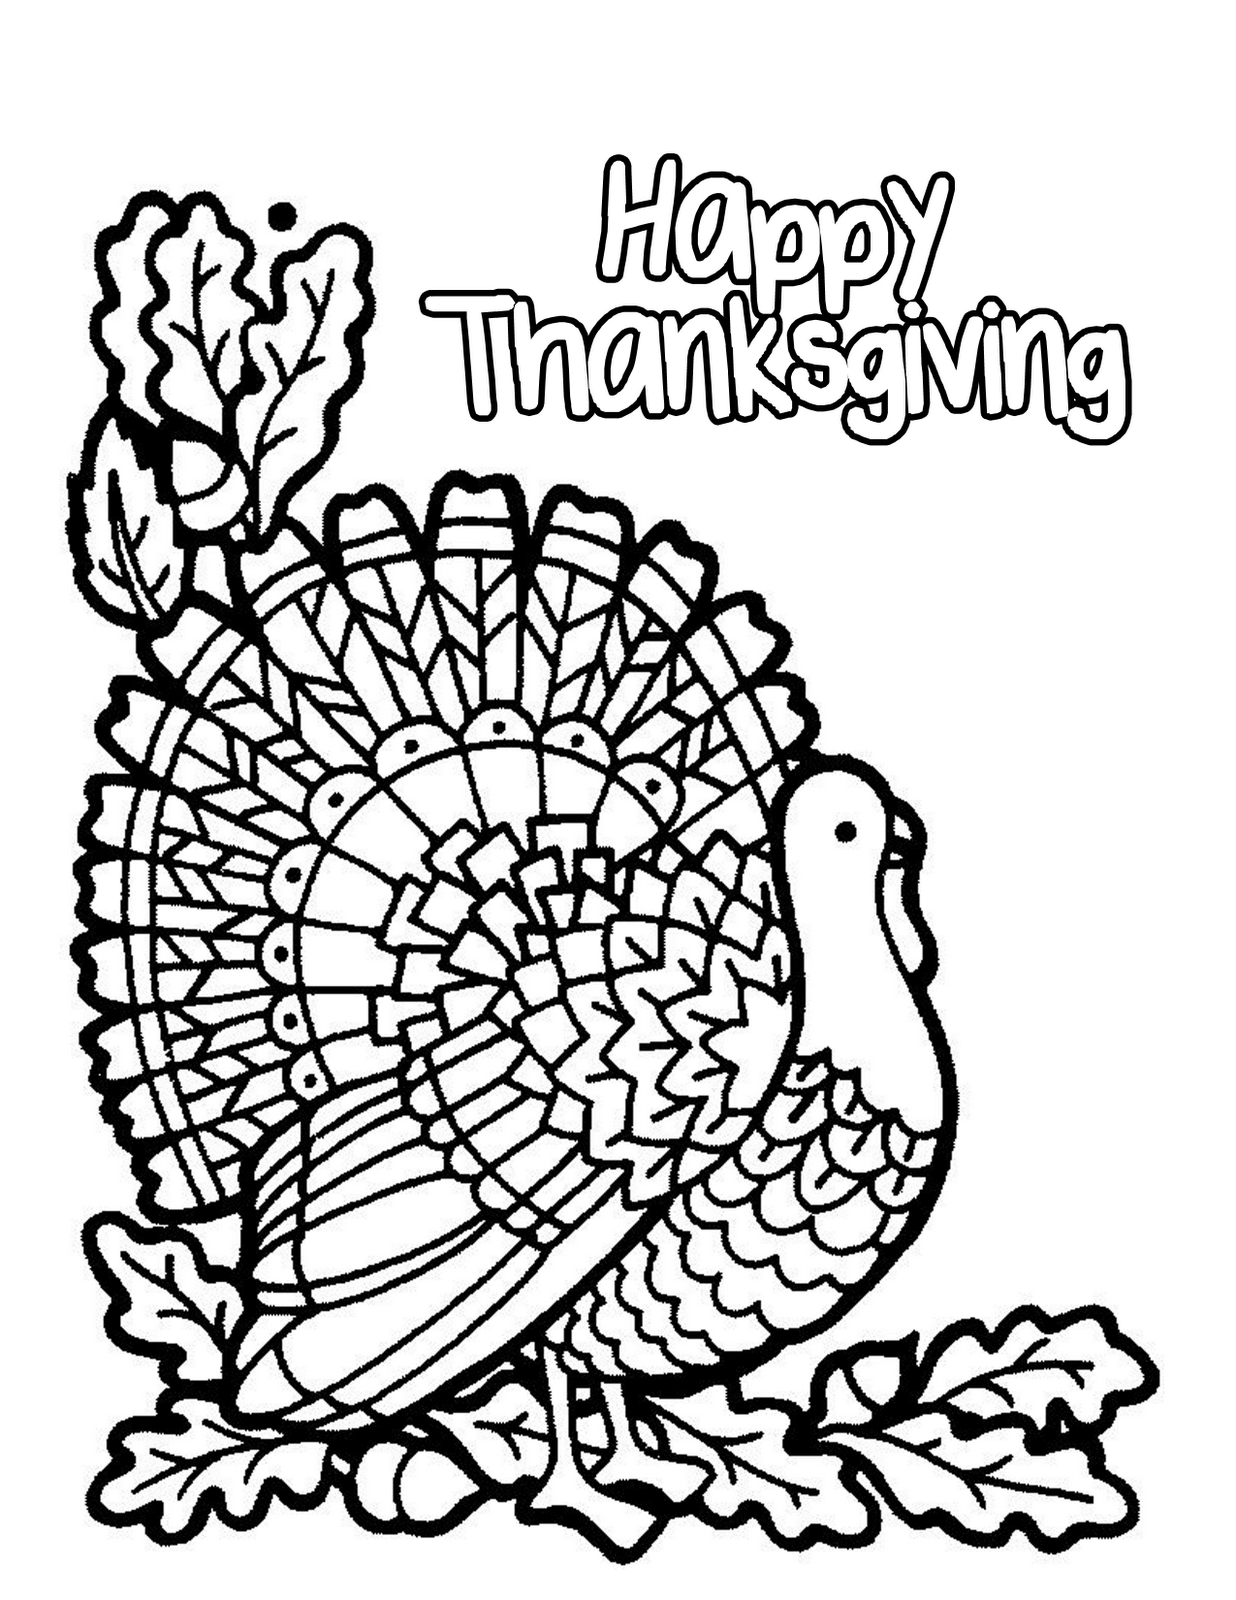 Turkey Happy Thanksgiving Coloring Pages Children | Thanksgiving ...